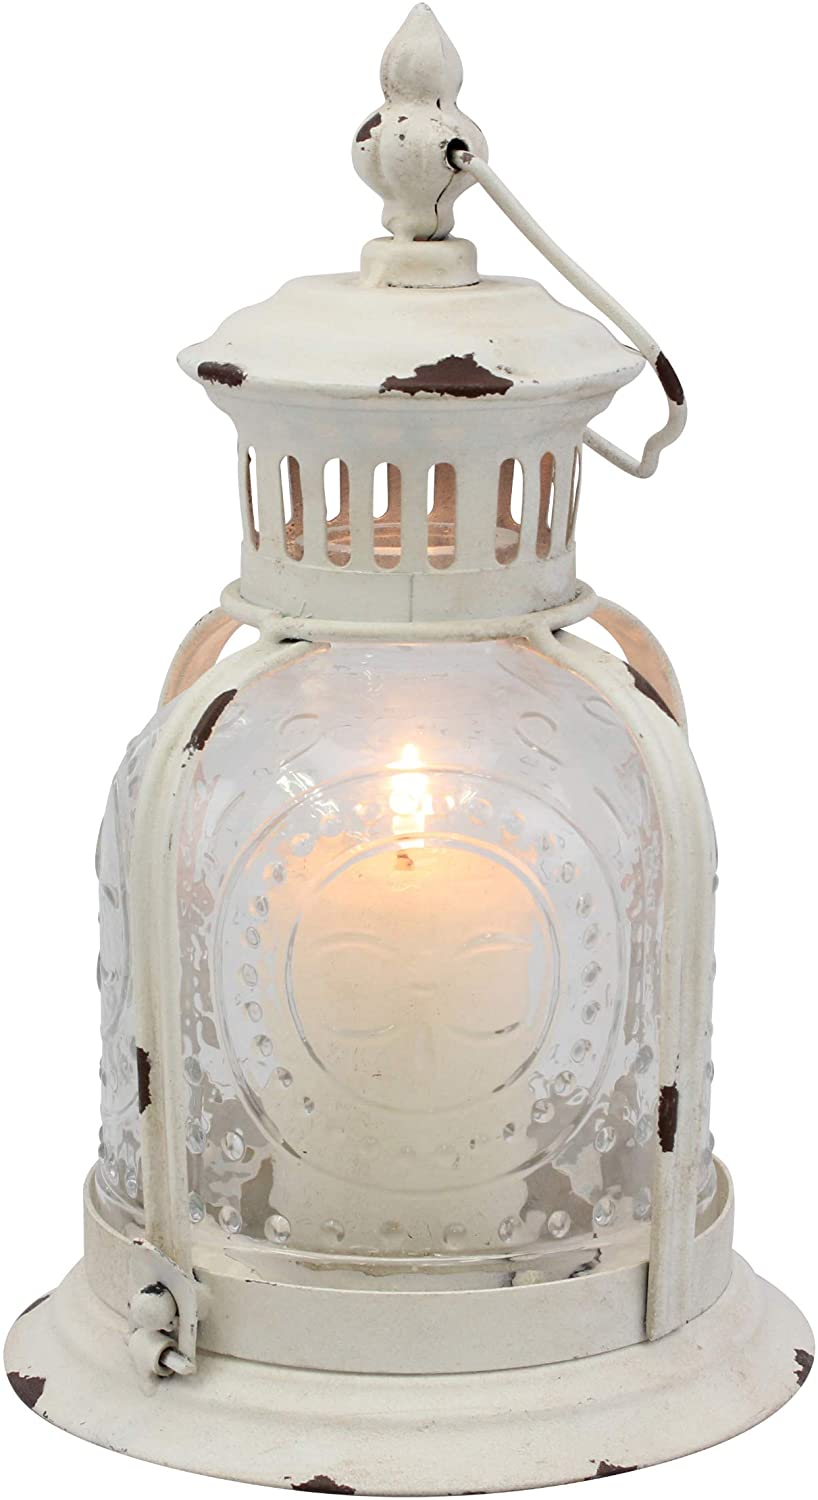 Stonebriar Antique Worn White Metal Candle Lantern, Decoration for Birthday Parties, a Rustic Wedding Centerpiece, or Create a Relaxing Spa Setting, for Indoor or Outdoor Use